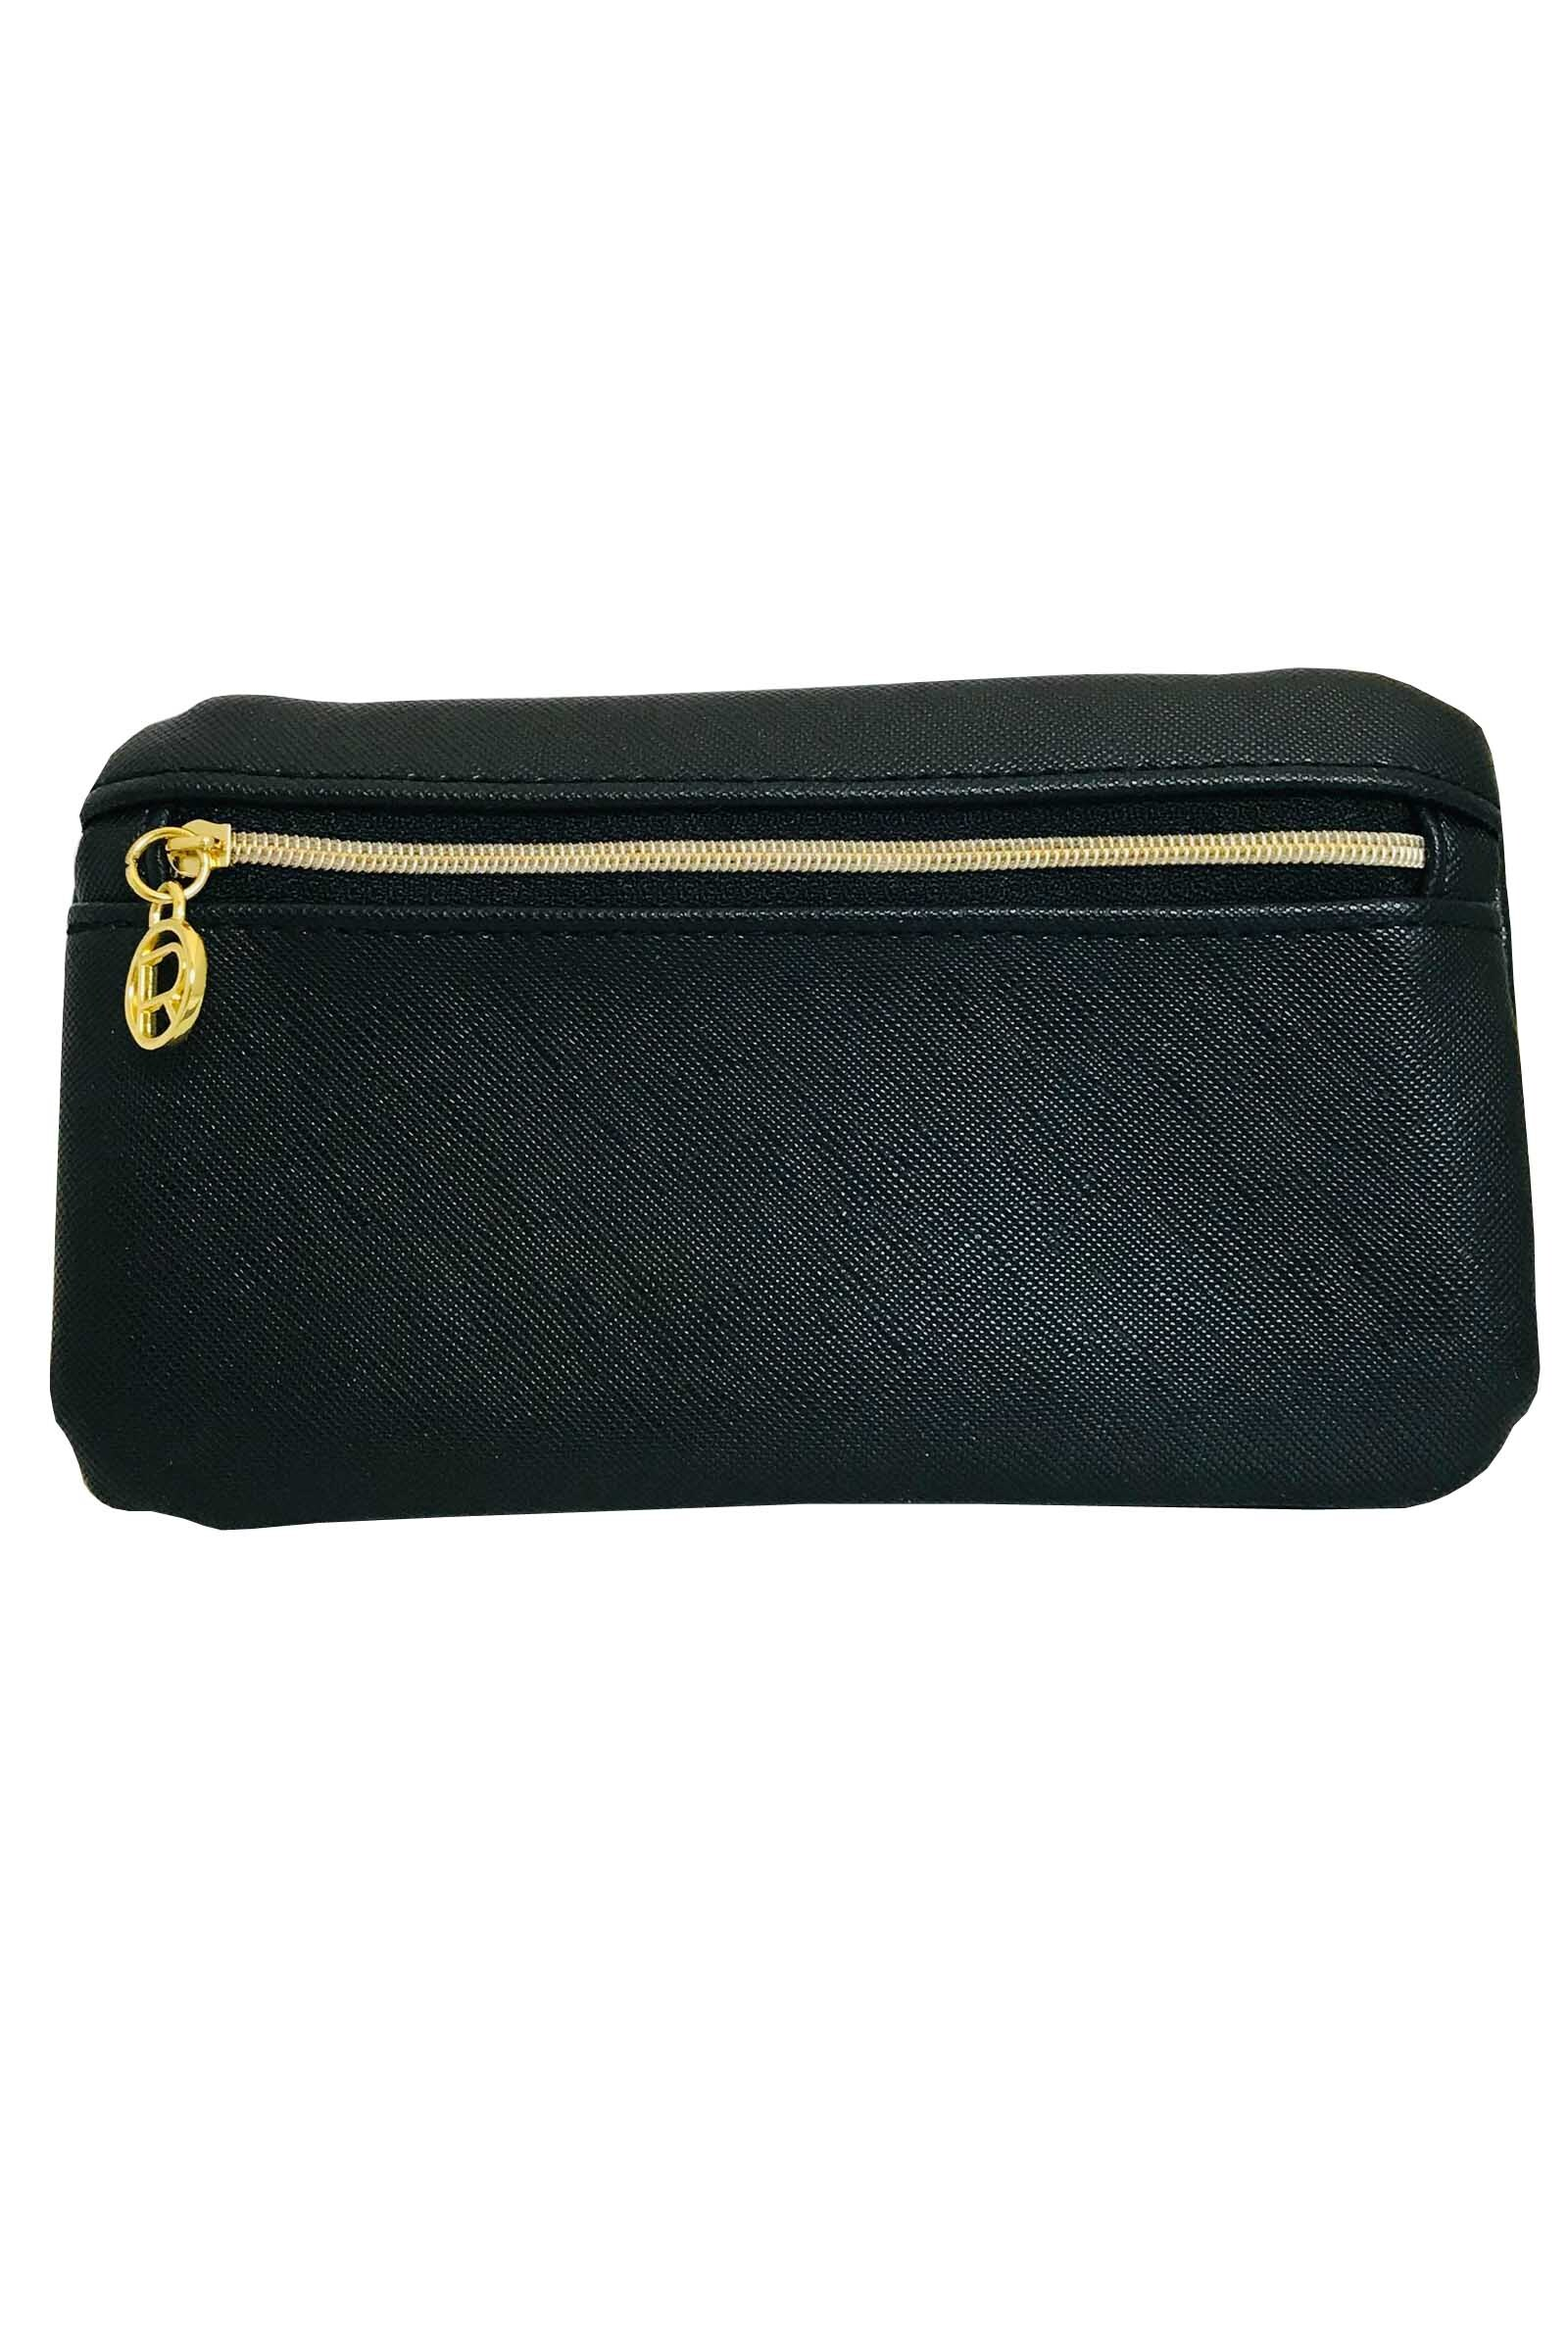 L Oreal Make Up Pouch Small Black